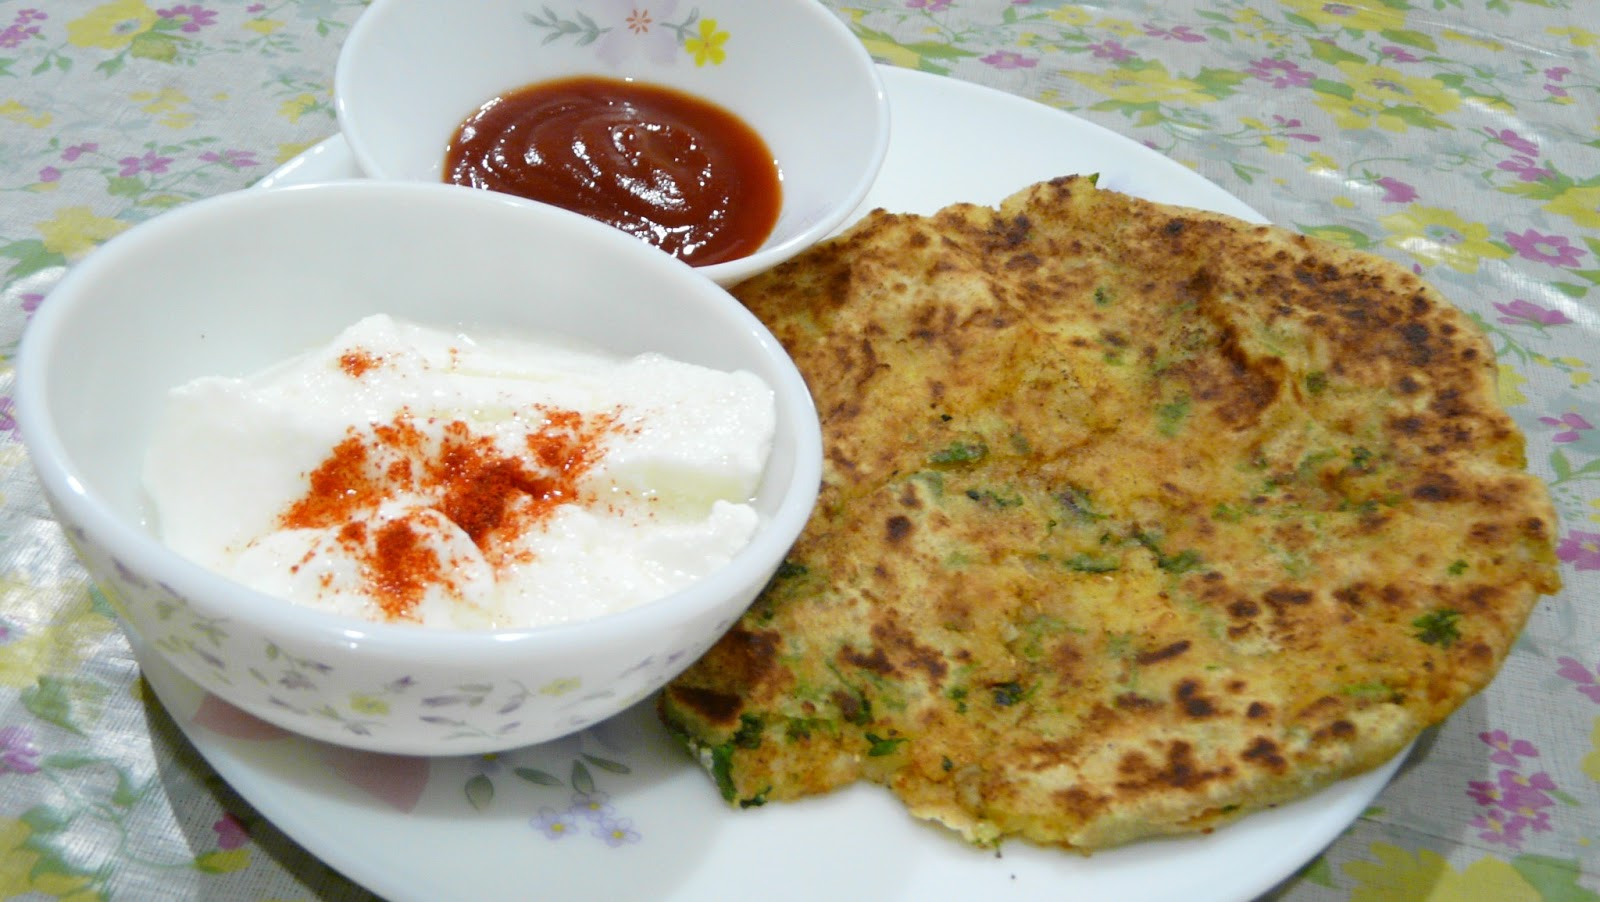 Meera s kitchen recipes aloo parantha indian bread stuffed aloo parantha indian bread stuffed with spicy mashed potatoes forumfinder Image collections